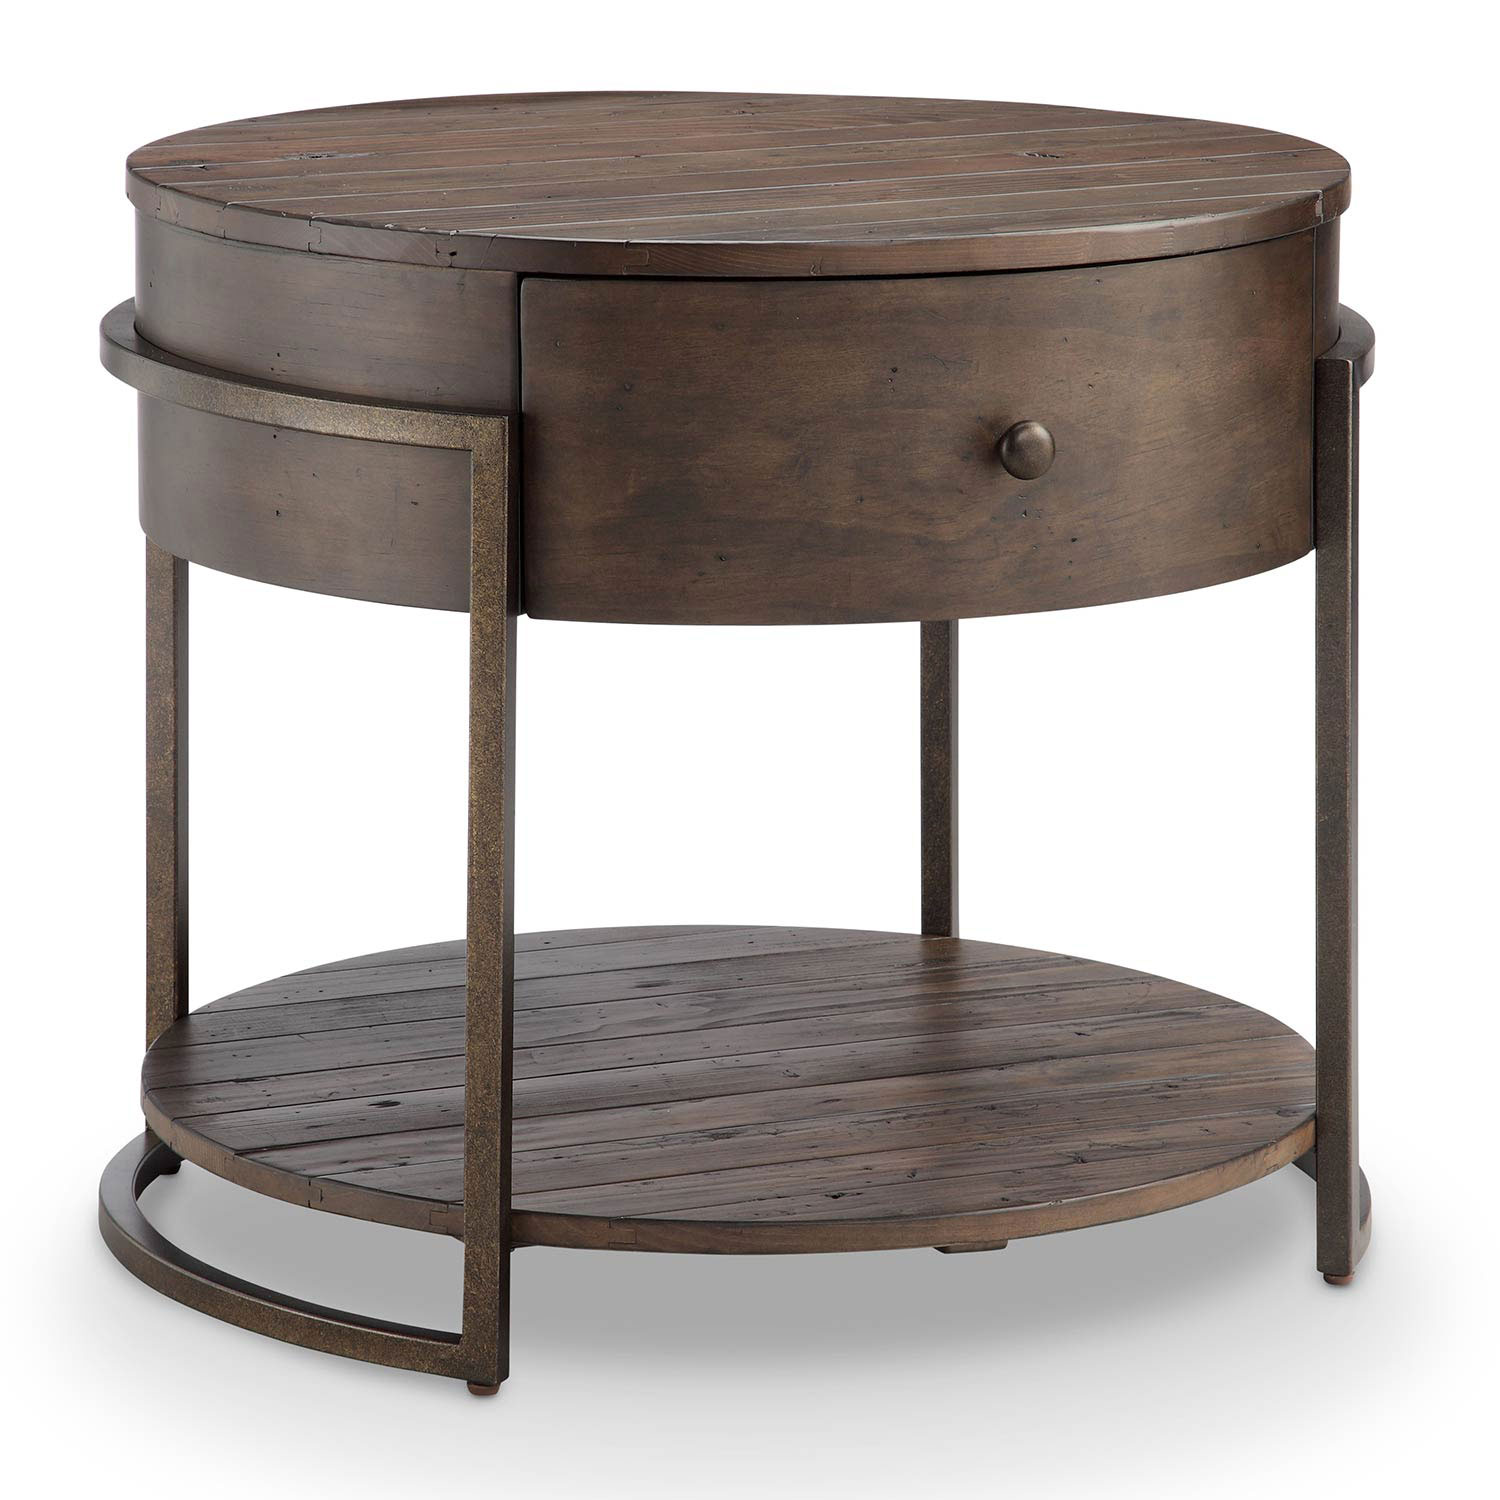 first fulton rustic dark whiskey reclaimed wood round accent tables table hover zoom display coffee ikea carolina furniture marble top pedestal black side lamps and pottery barn